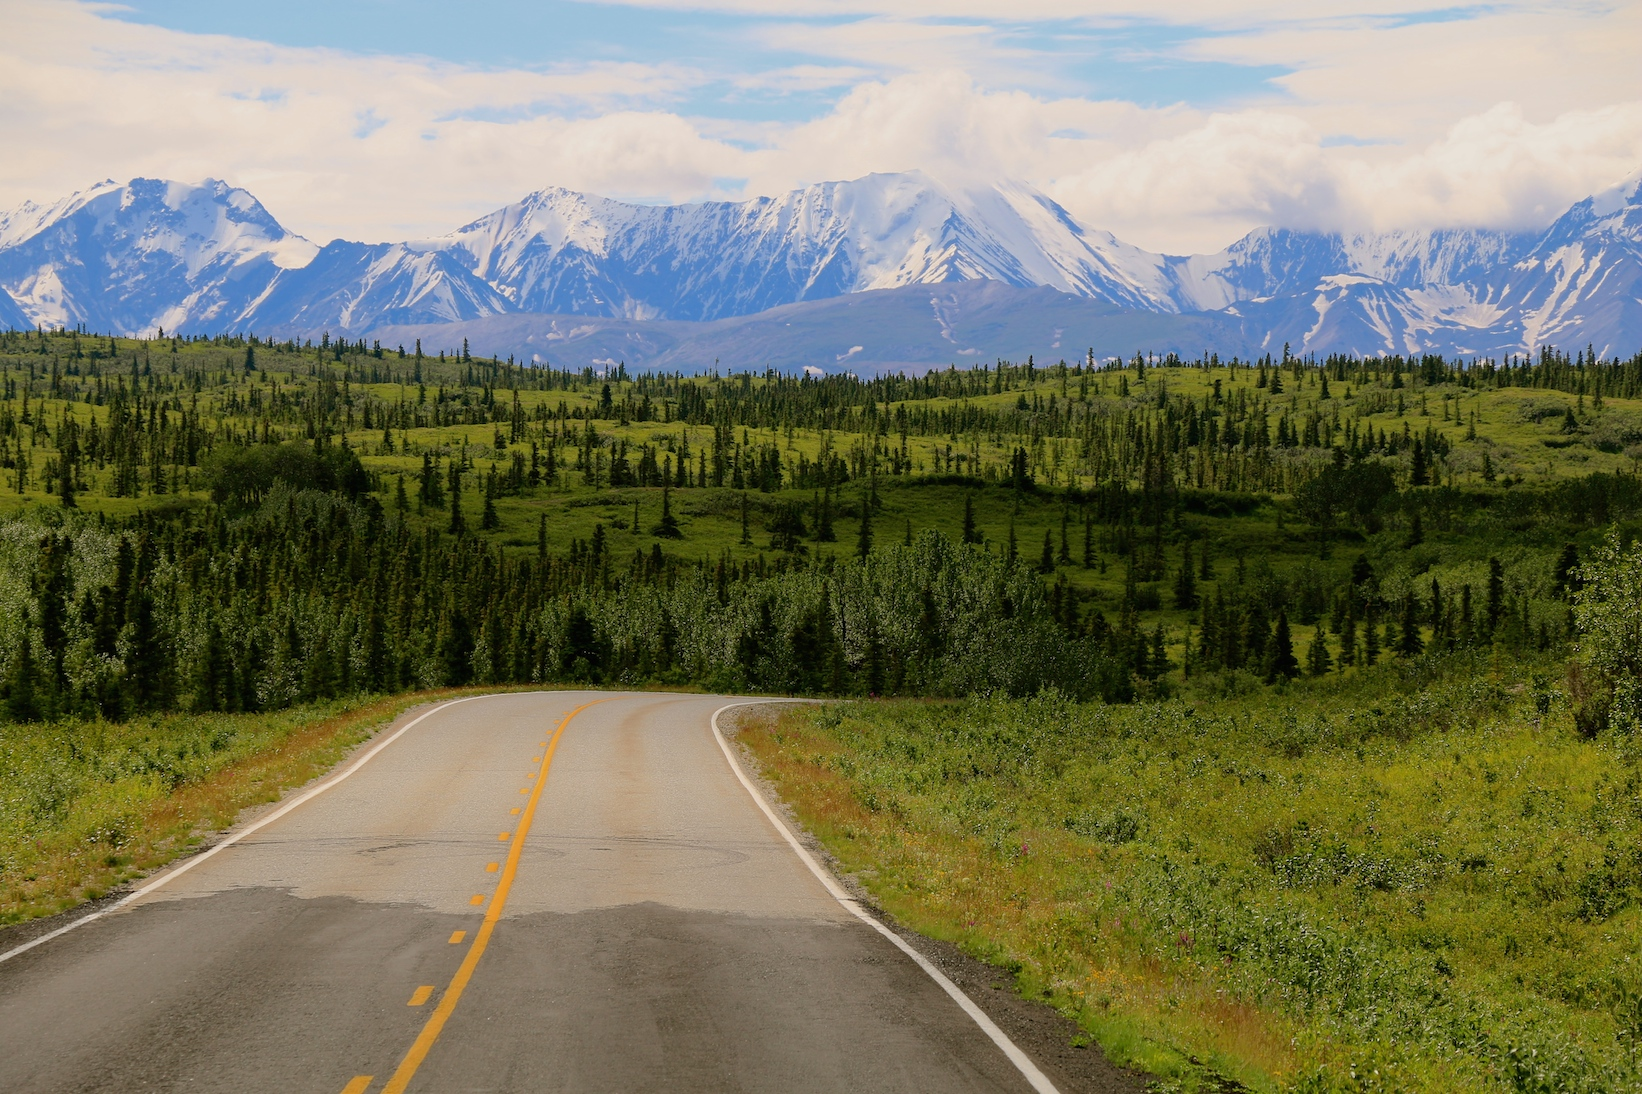 bfc8f1df5 THE RICHARDSON HIGHWAY – FAIRBANKS TO VALDEZ | Our Home Has 6 Wheels